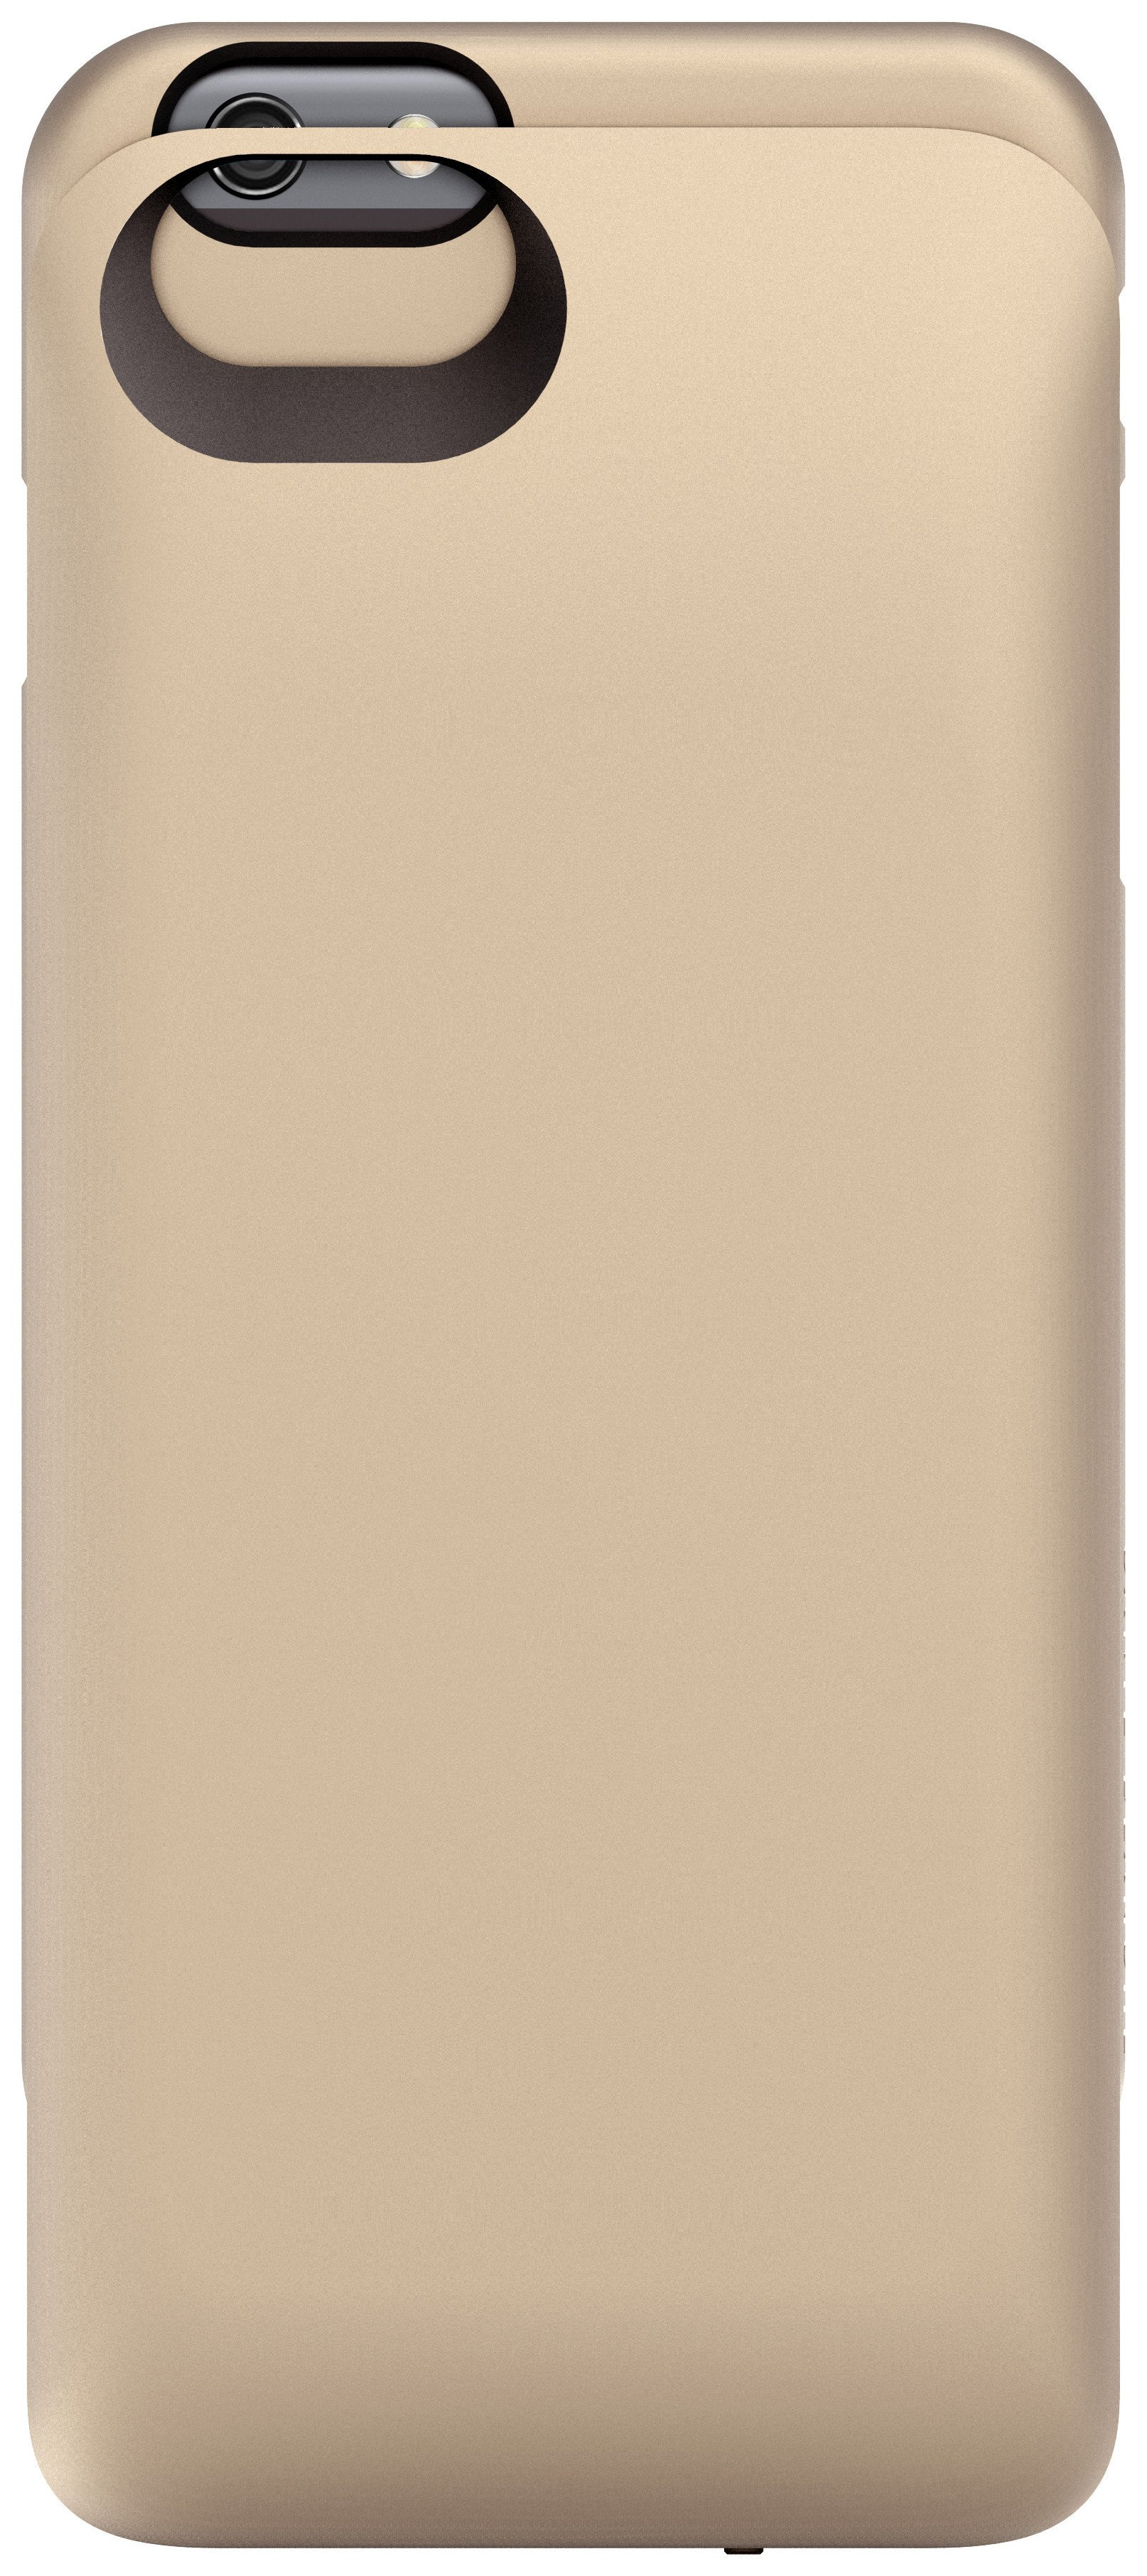 Image of BOOSTCASE 2700mAh Charging Case for iPhone 6 Plus - Gold.